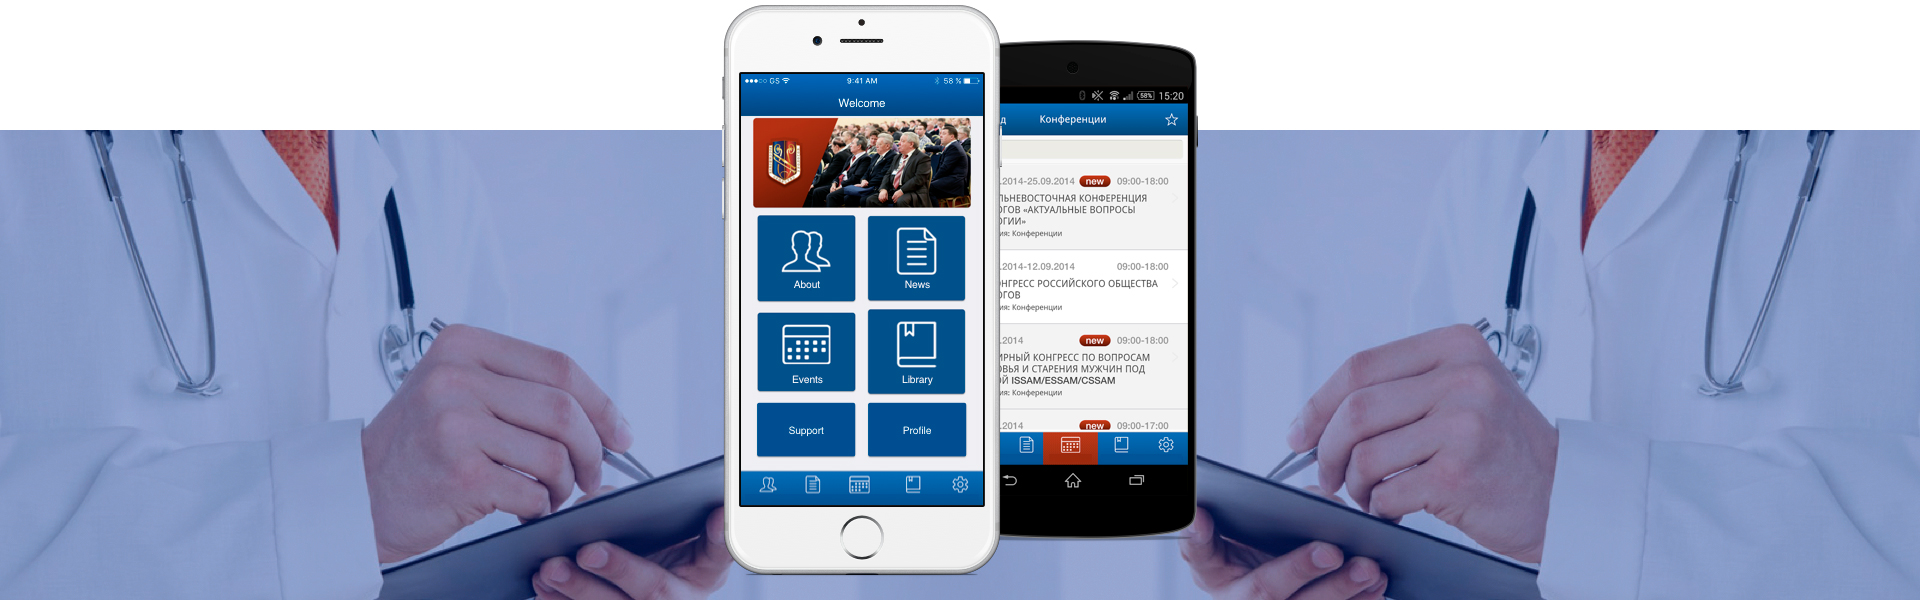 Urology mobile app